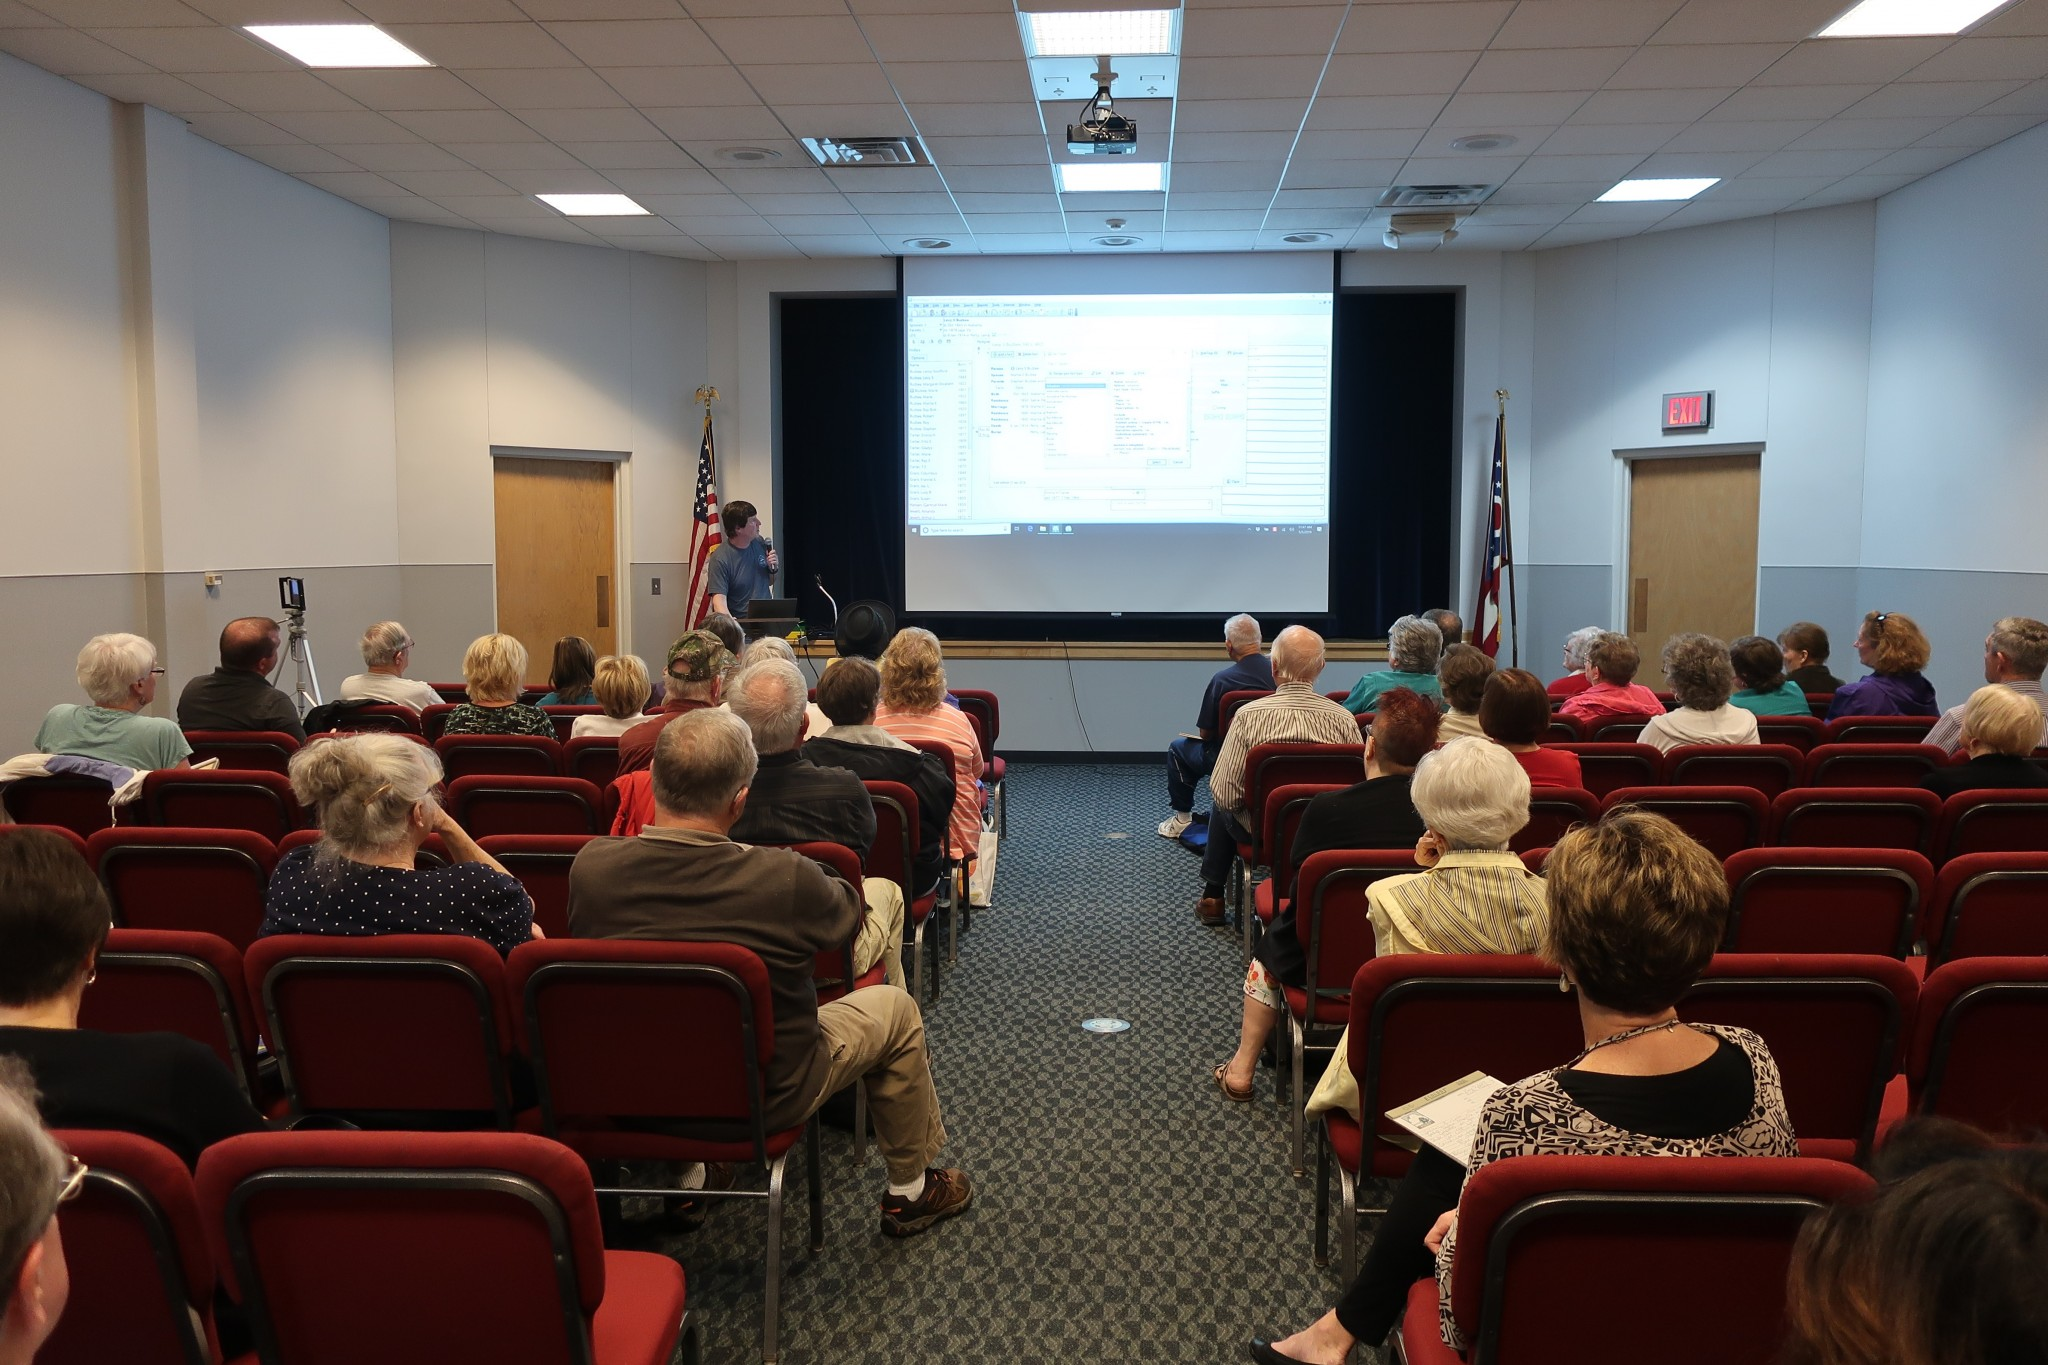 Bruce Buzbee, creator of RootsMagic software, gives a program in May 2019 at the Hayes Presidential Library & Museums. Buzbee will return to help patrons with RootsMagic questions in May 2020. Submitted photo.